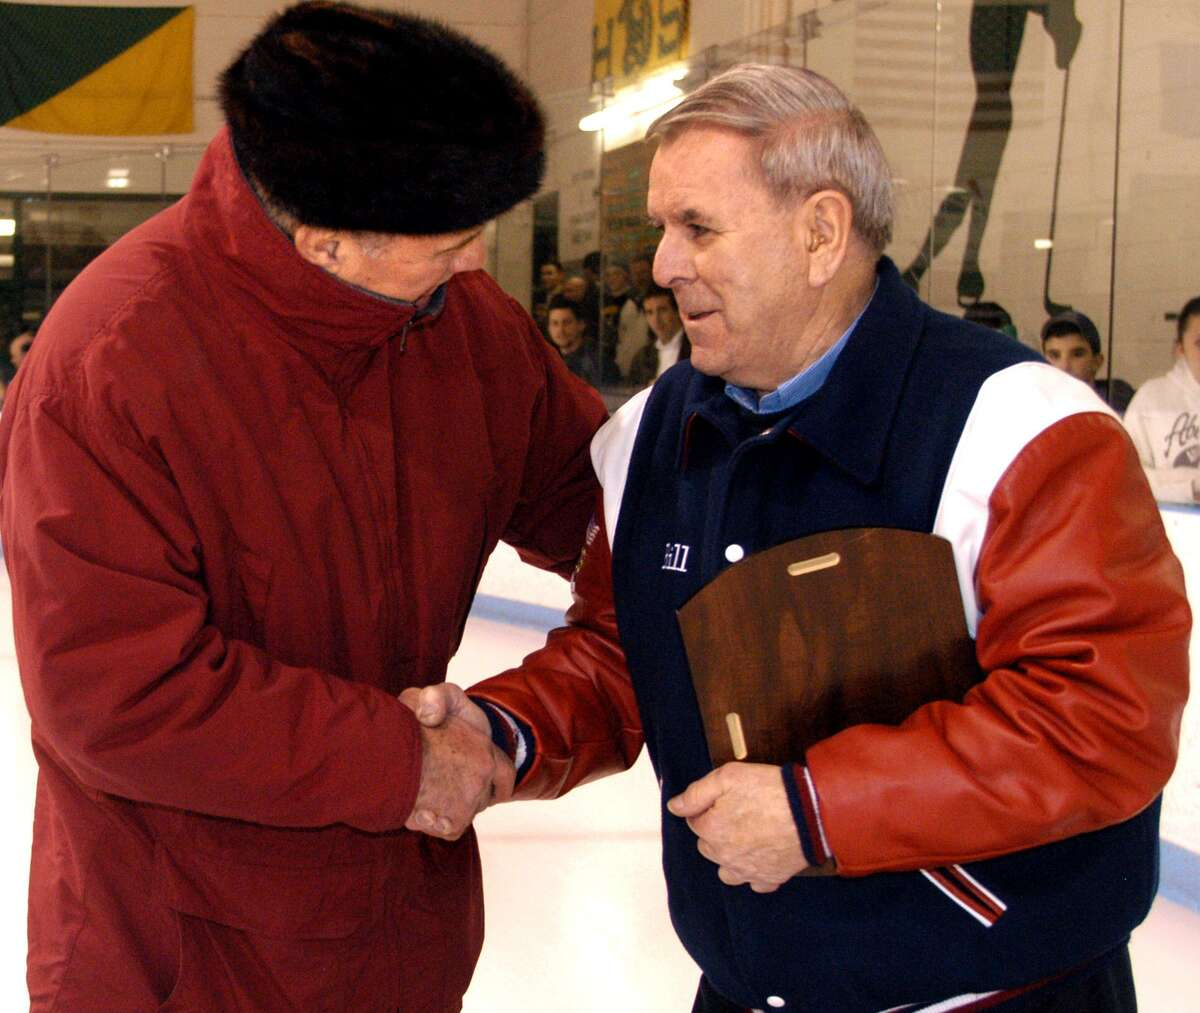 Dick Gagliardi, left, shakes hands with Bill Belisle after the two the two former coaches were honored at a ceremony preceding a Hamden-Mount St. Charles hockey game in Hamden.